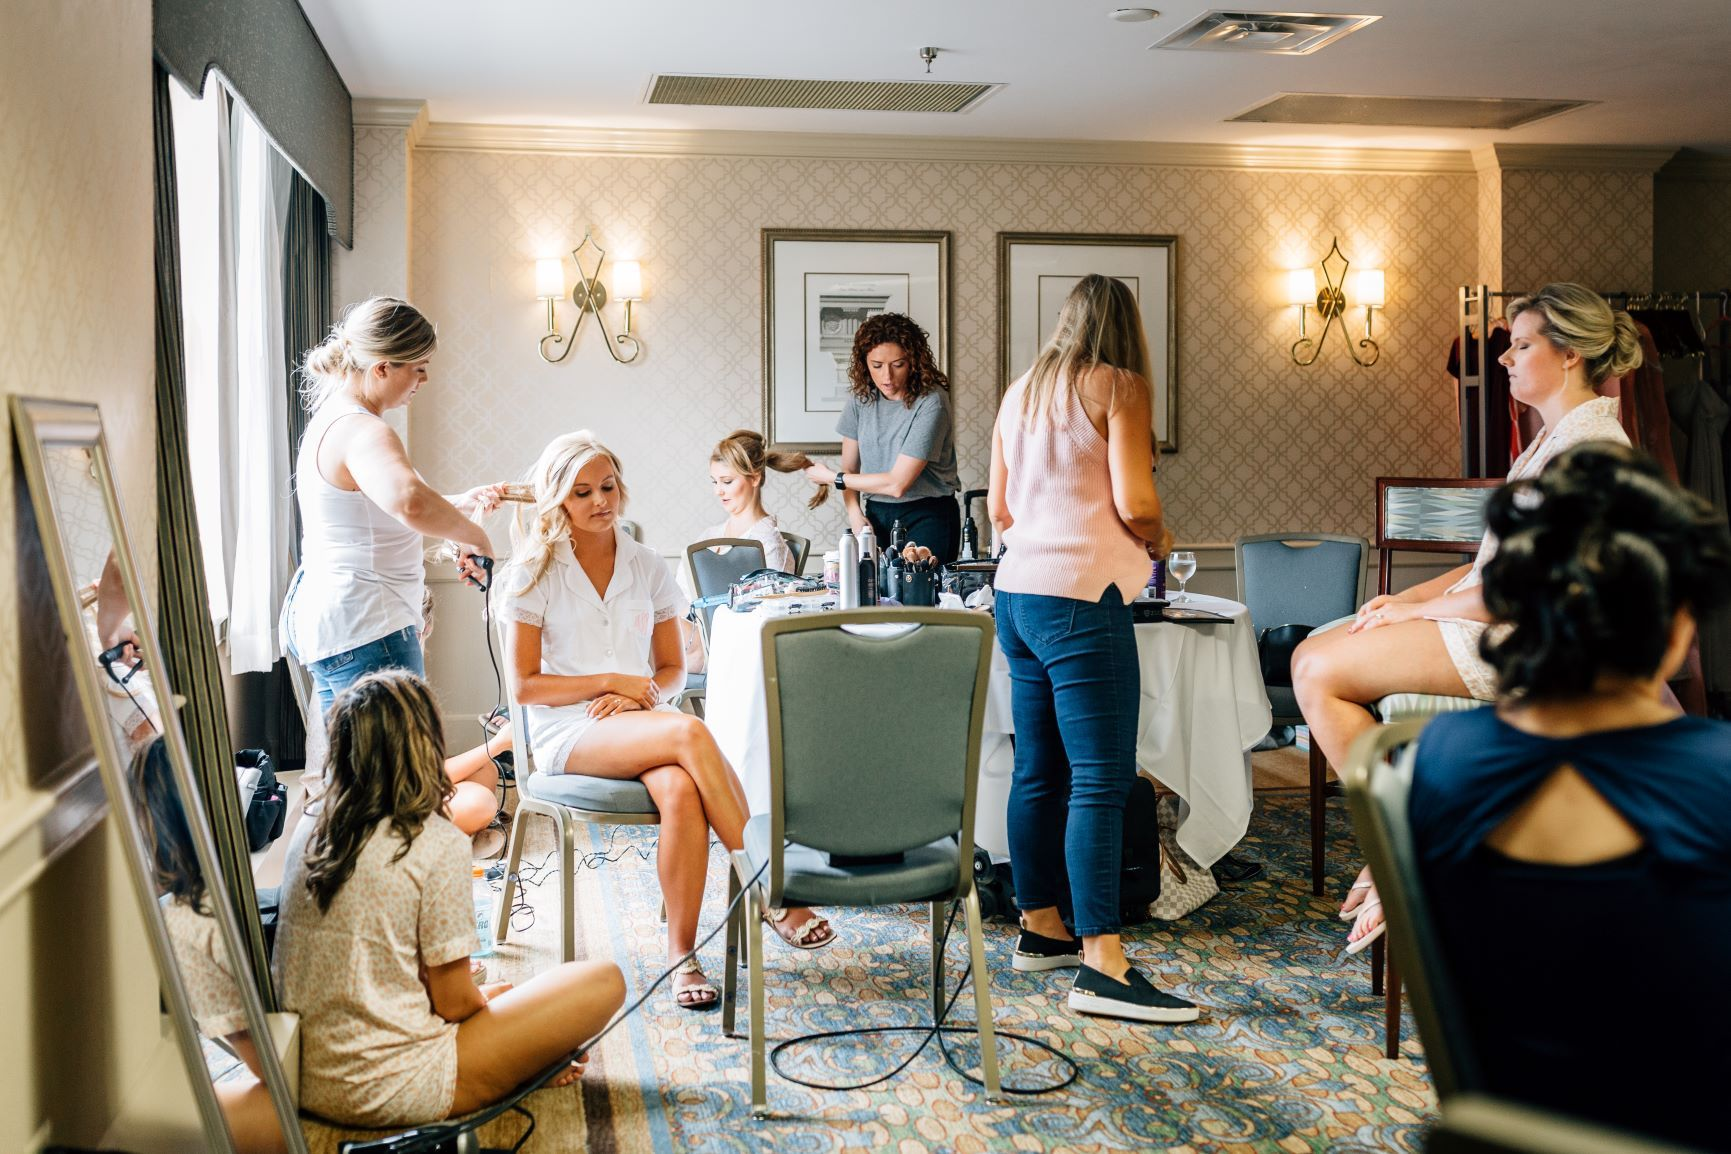 A bridal party gets ready in a room.